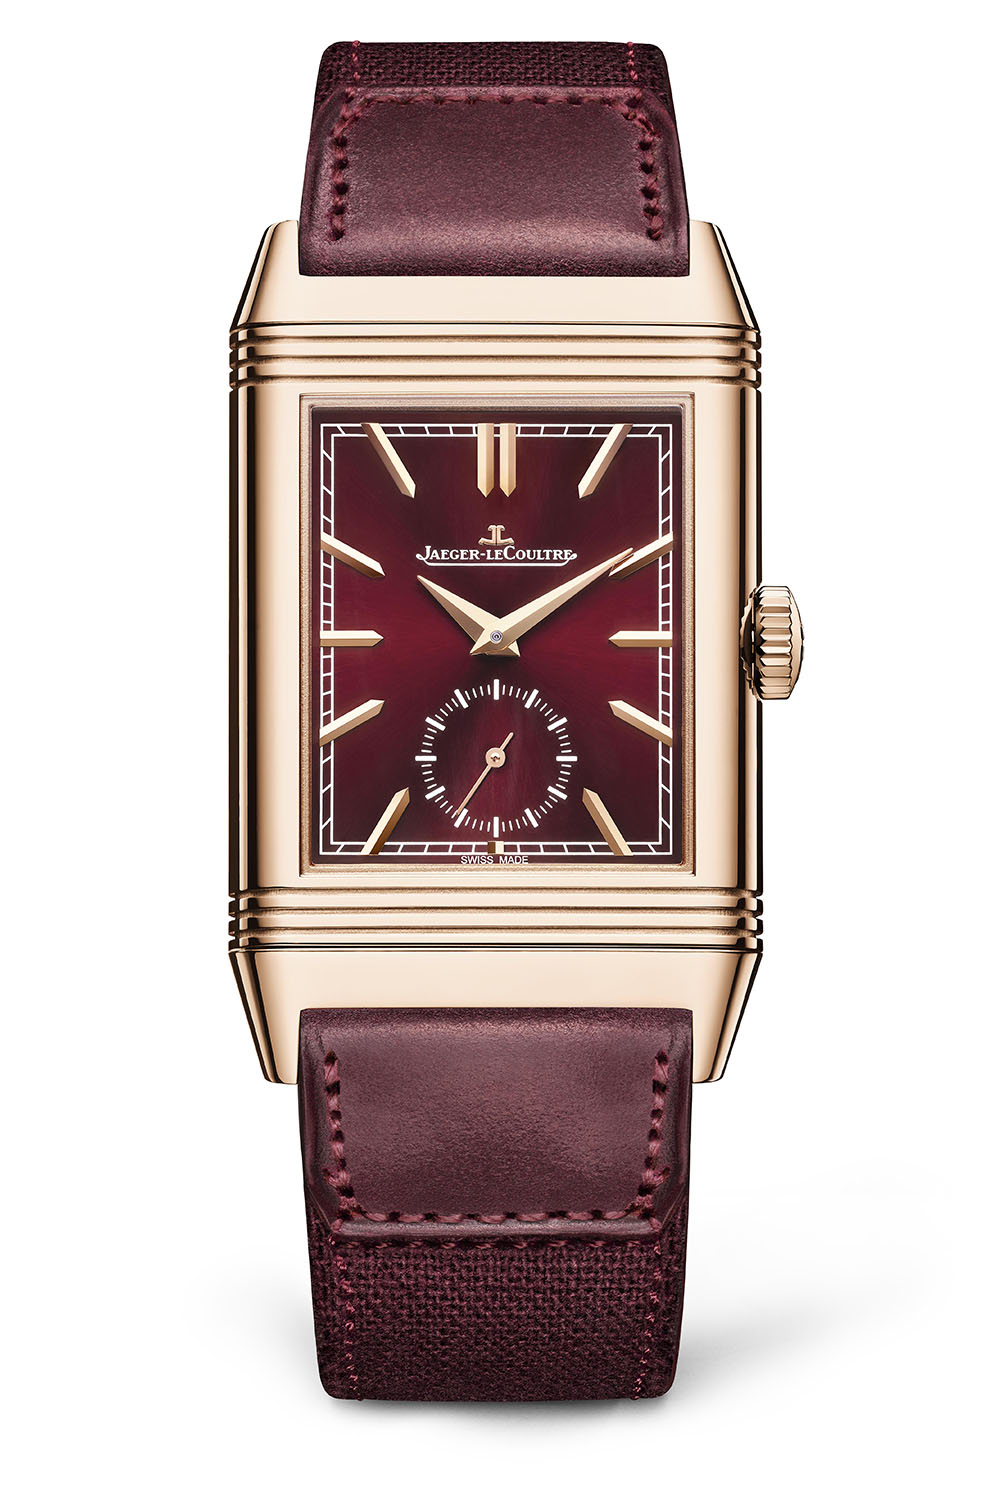 Jaeger LeCoultre Reverso Tribute DuoFace Fagliano Burgundy Limited 17 1